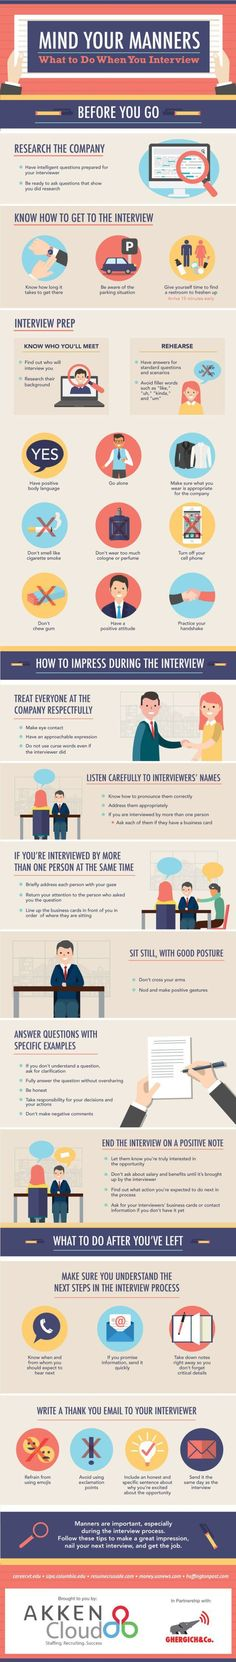 Find out more JOB INTERVIEW tips on Tipsographic.com